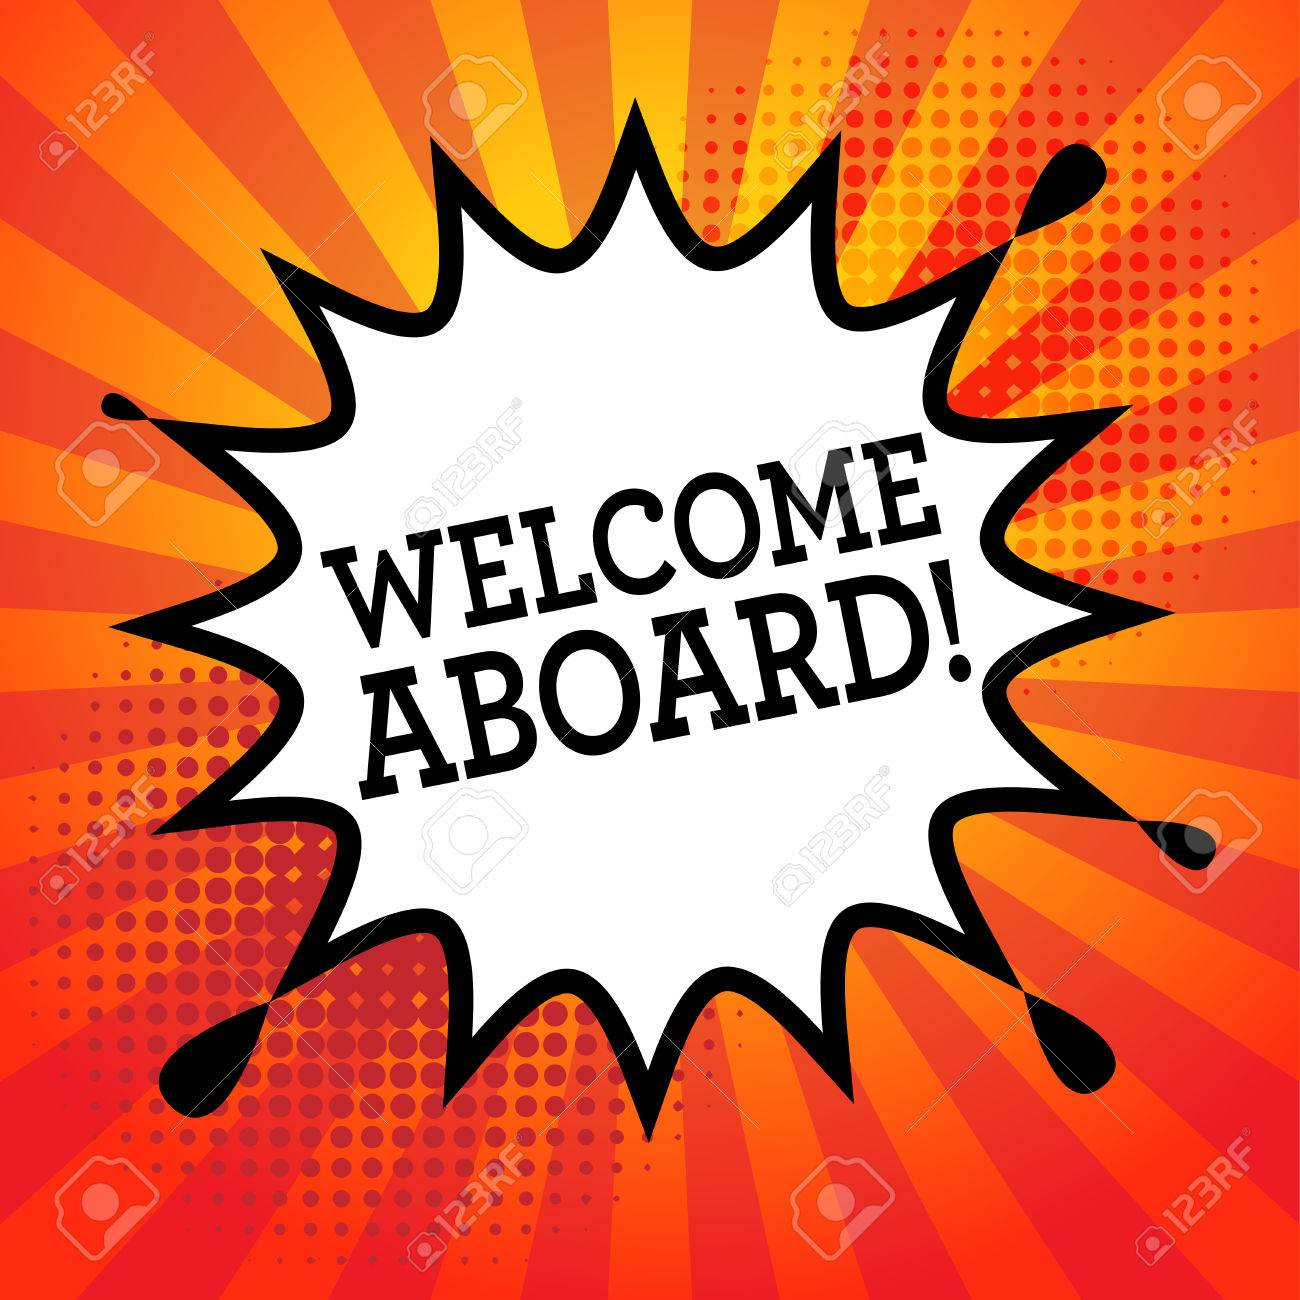 Welcome Aboard Stock Photos Royalty Free Welcome Aboard Images